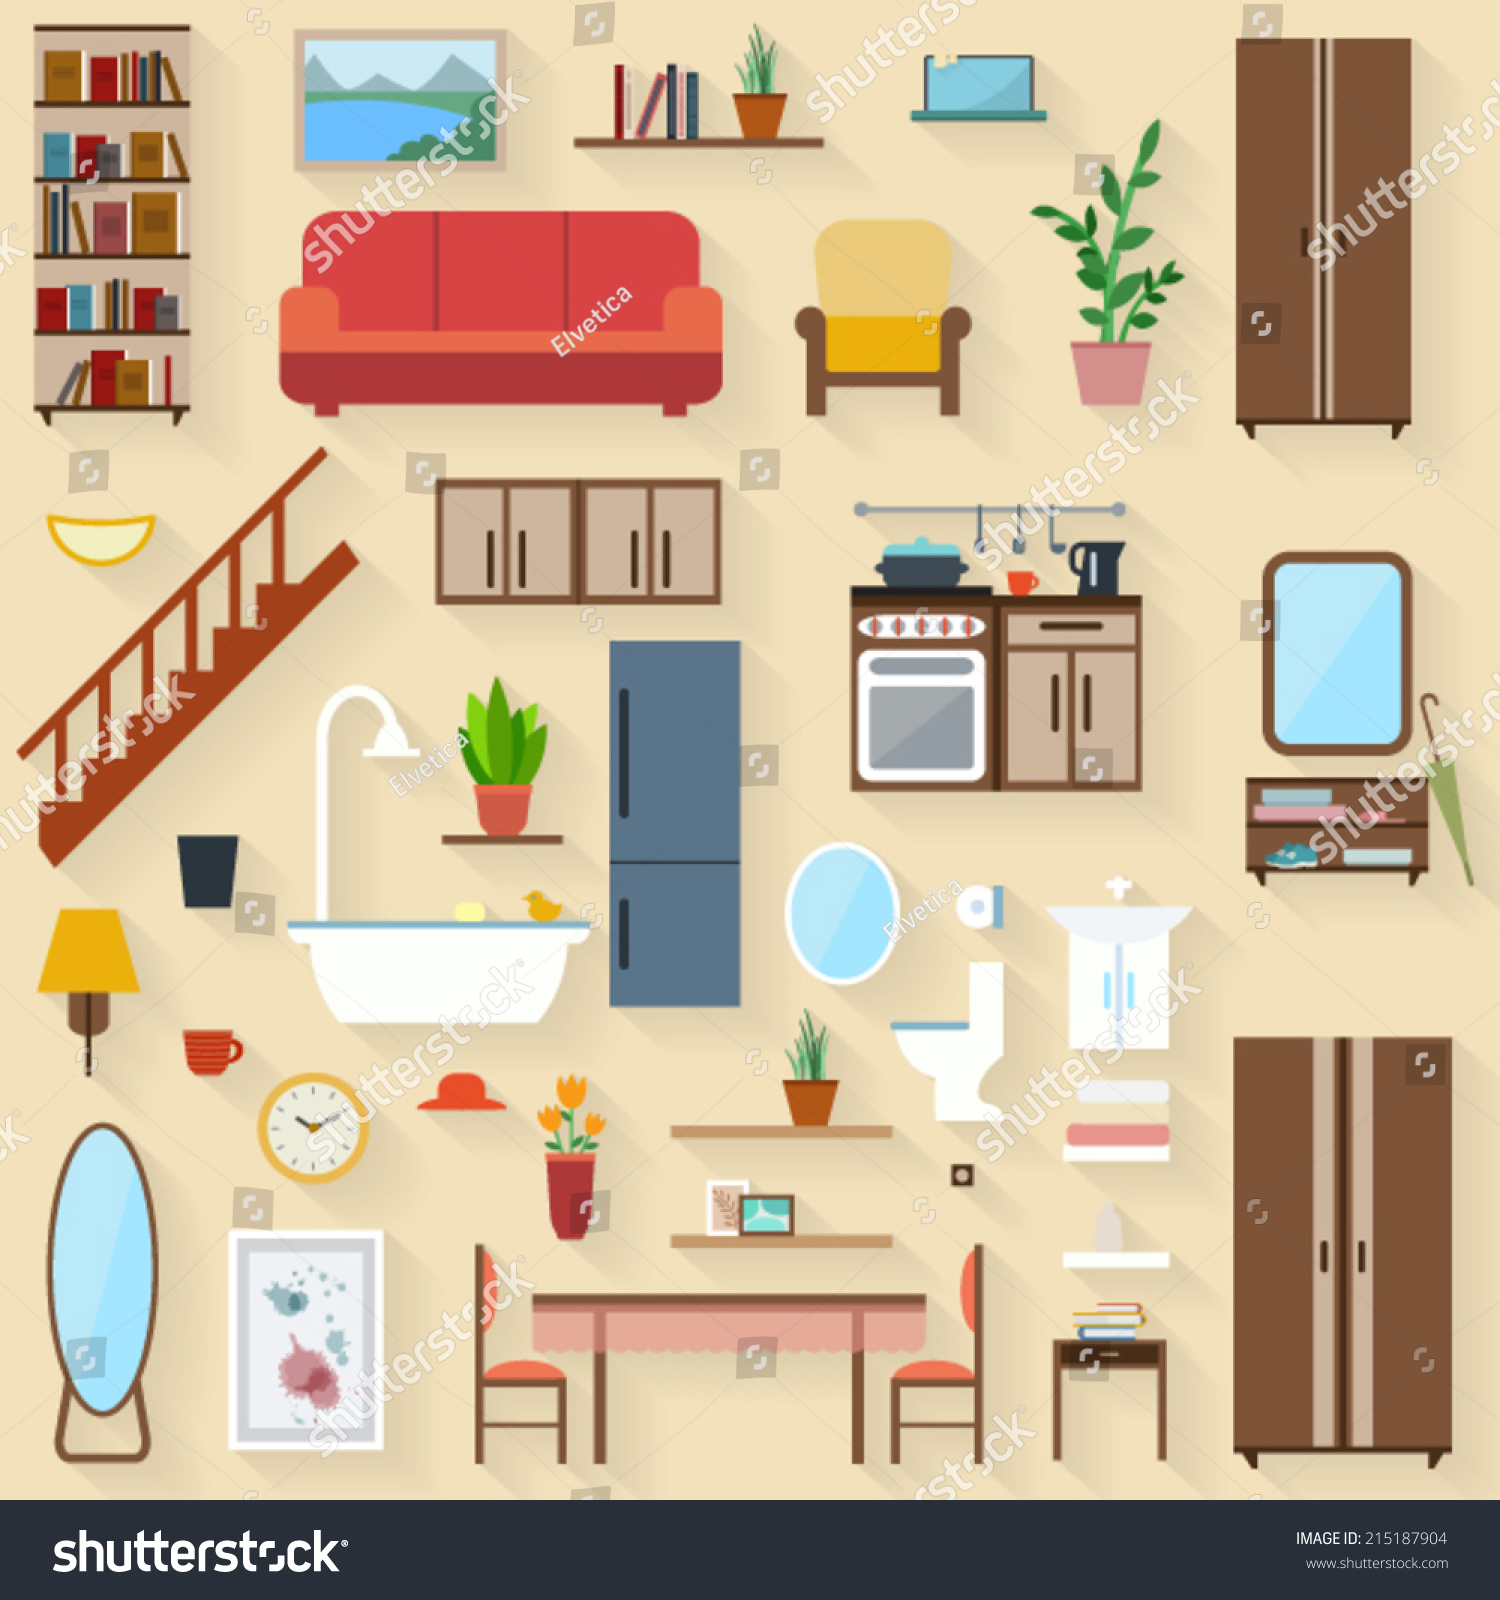 Furniture Set Rooms House Flat Style Stock Vector